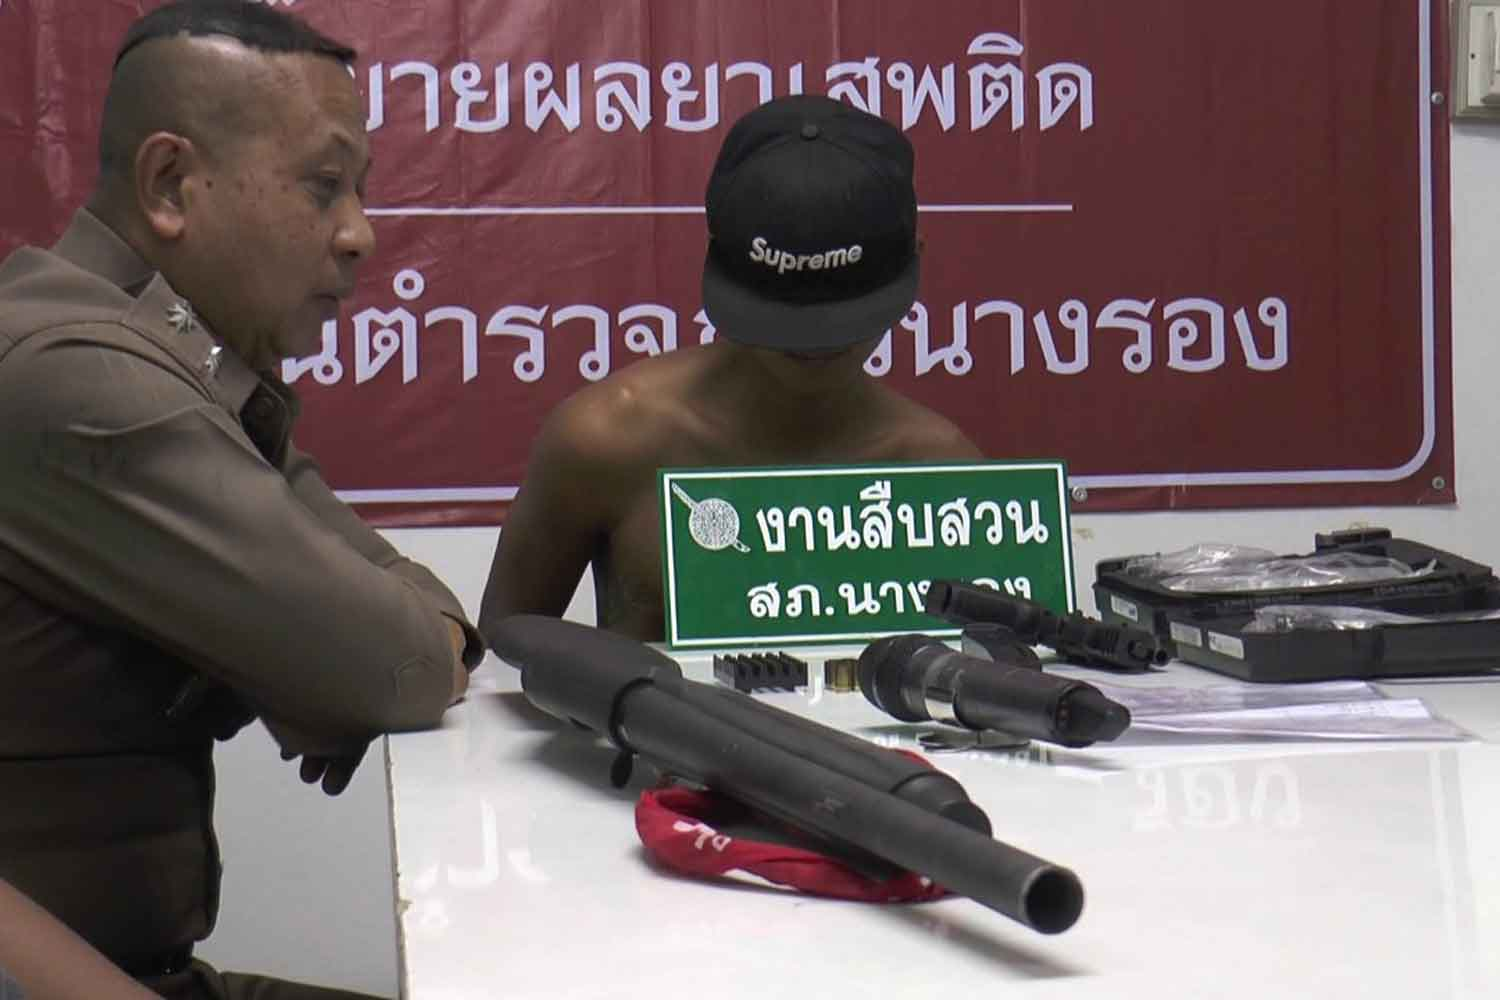 Jakkrit Songkul (right) at  Nang Rong police station in Buri Ram province after his arrest. He fired more than 40 shots with a handgun in a community late on Sunday afternoon. (Photo by Surachai Piragsa)